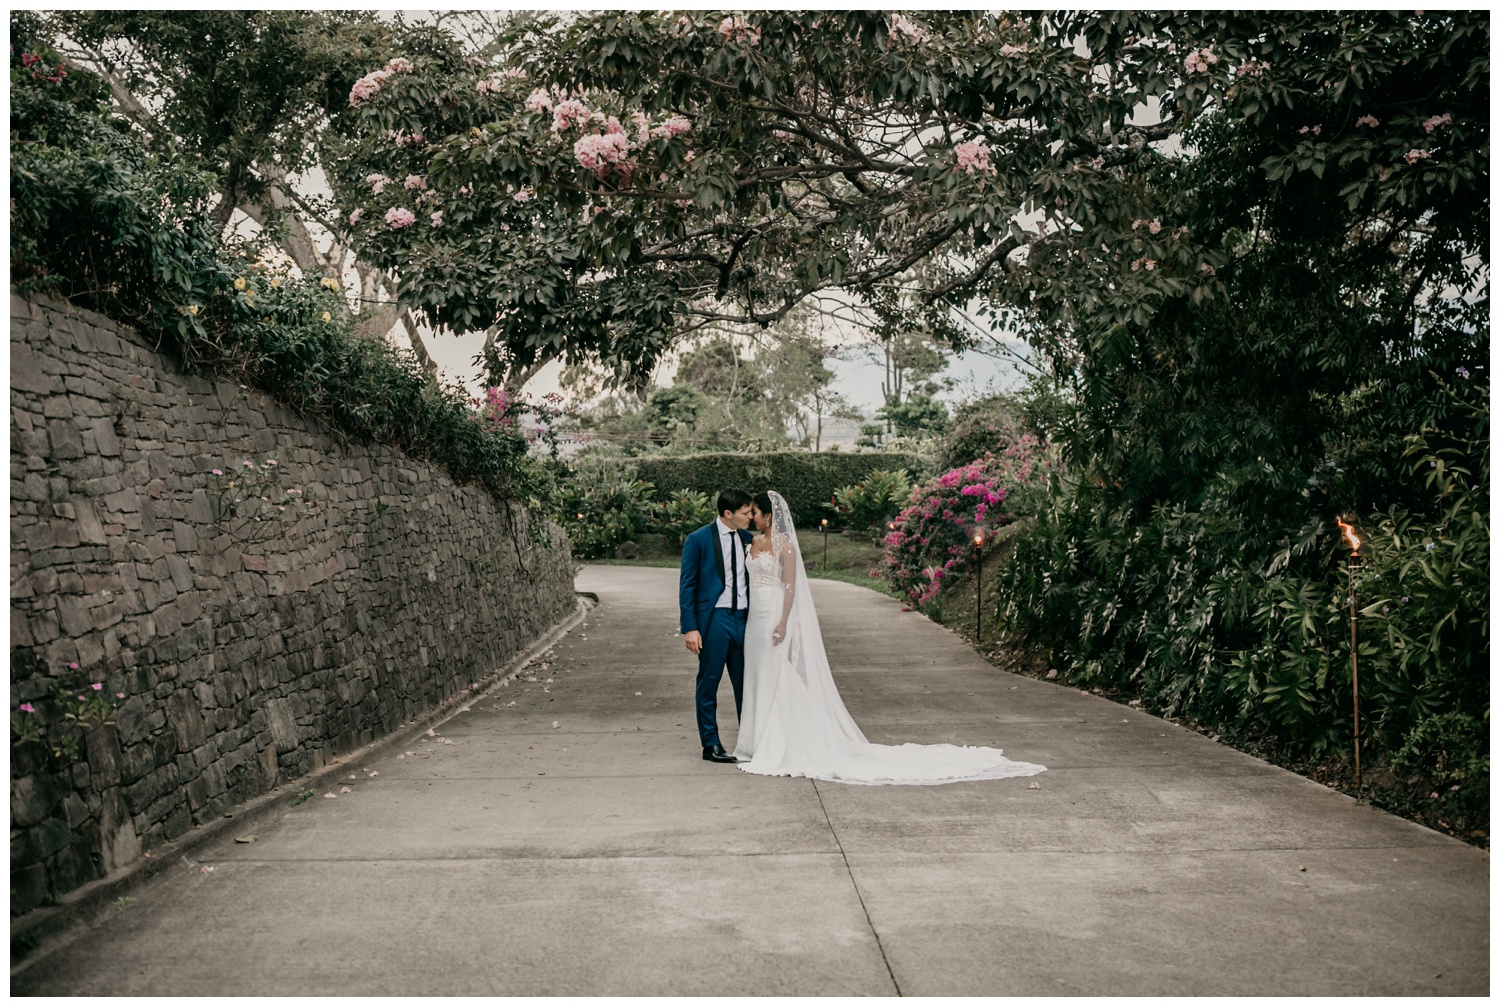 adriana_rivera_miranda_weddings_el_salvador_43.jpg